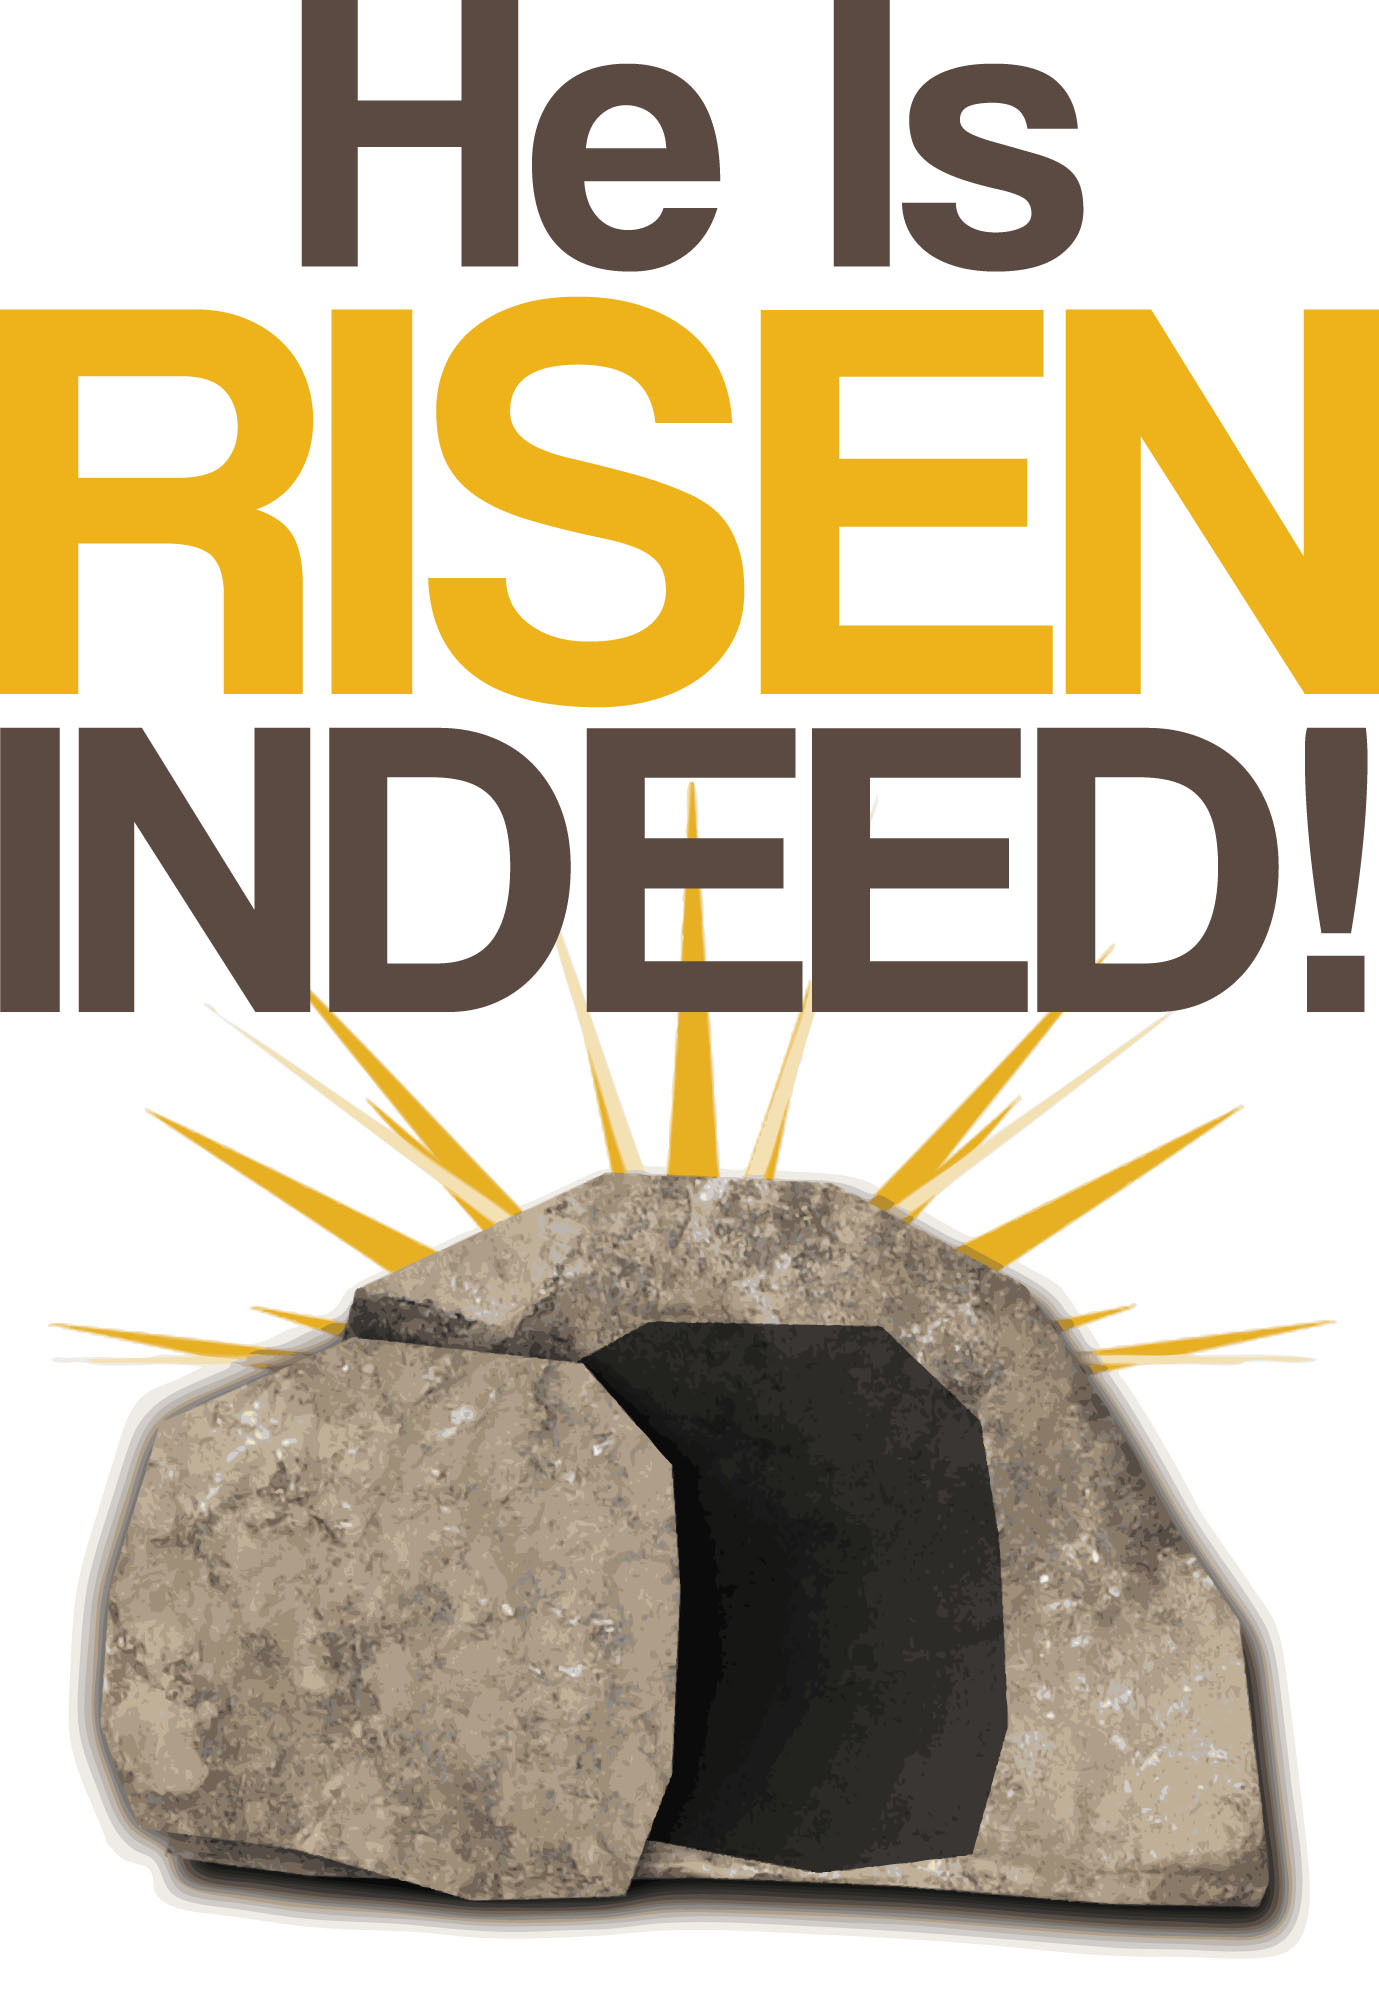 hight resolution of he is risen clipart clipart suggest uncategorized bethany baptist church gardner ma